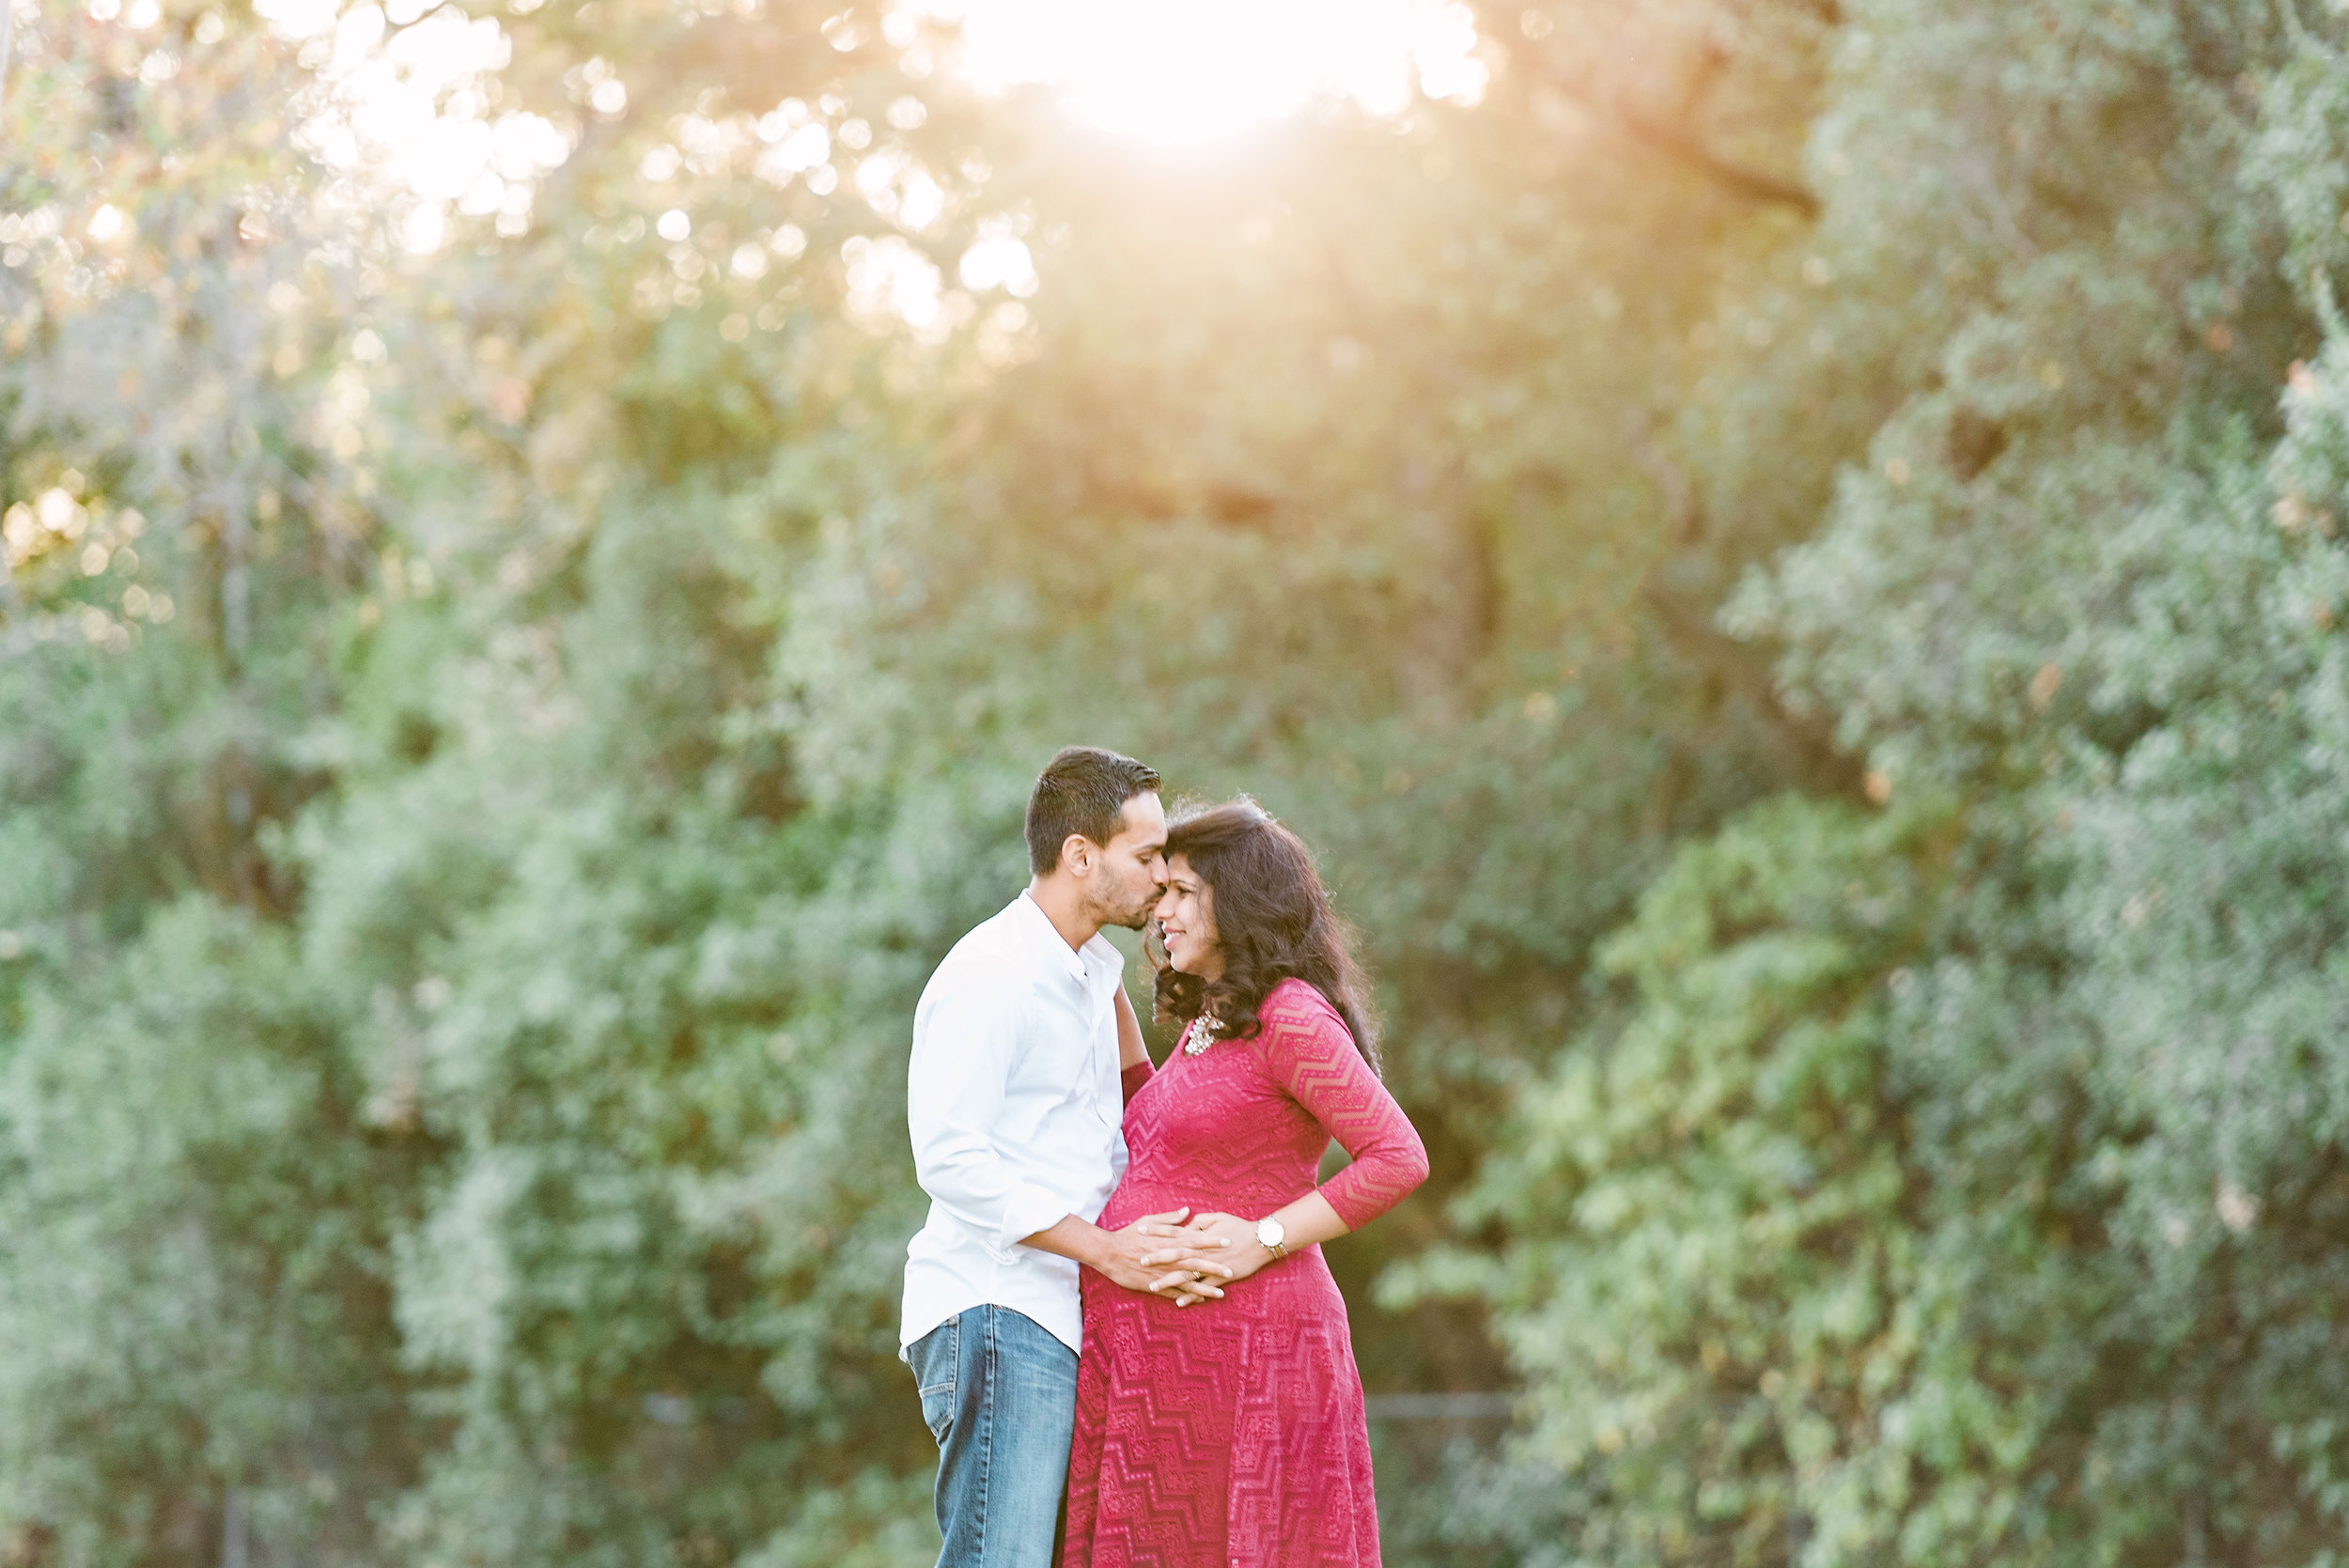 Supriya_Maternity_Session_11052017-11.jpg